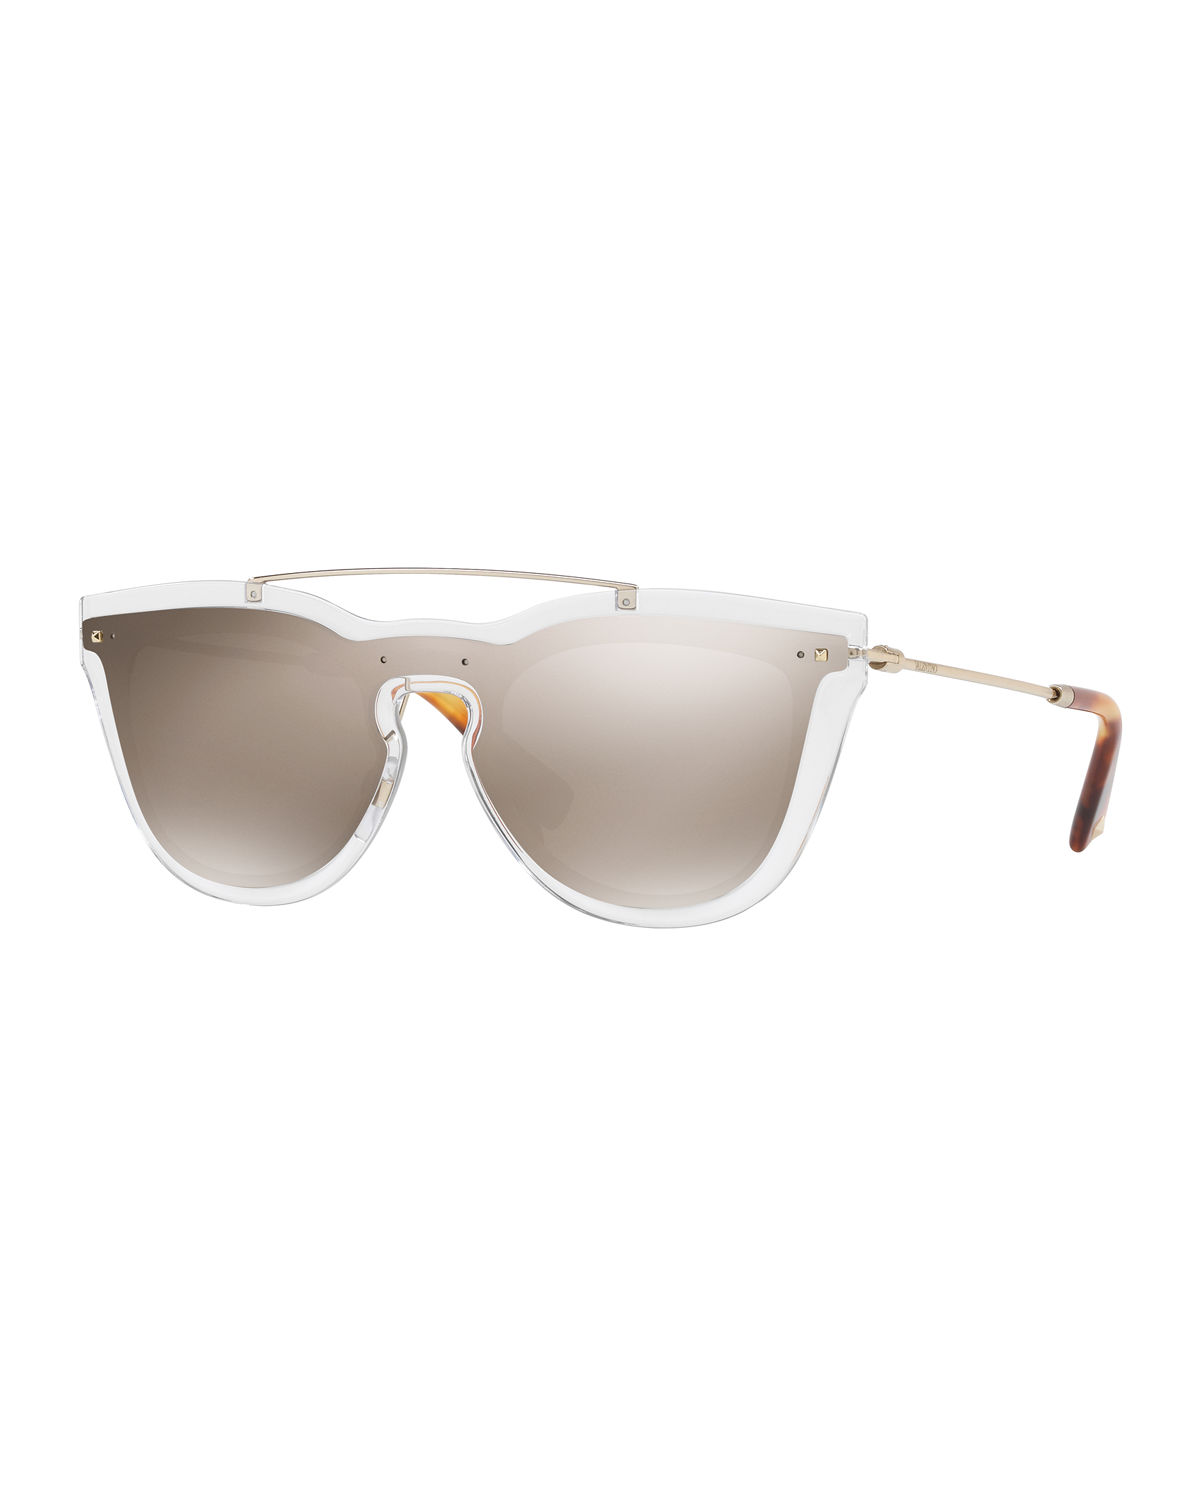 Glamgloss Mirrored Shield Sunglasses